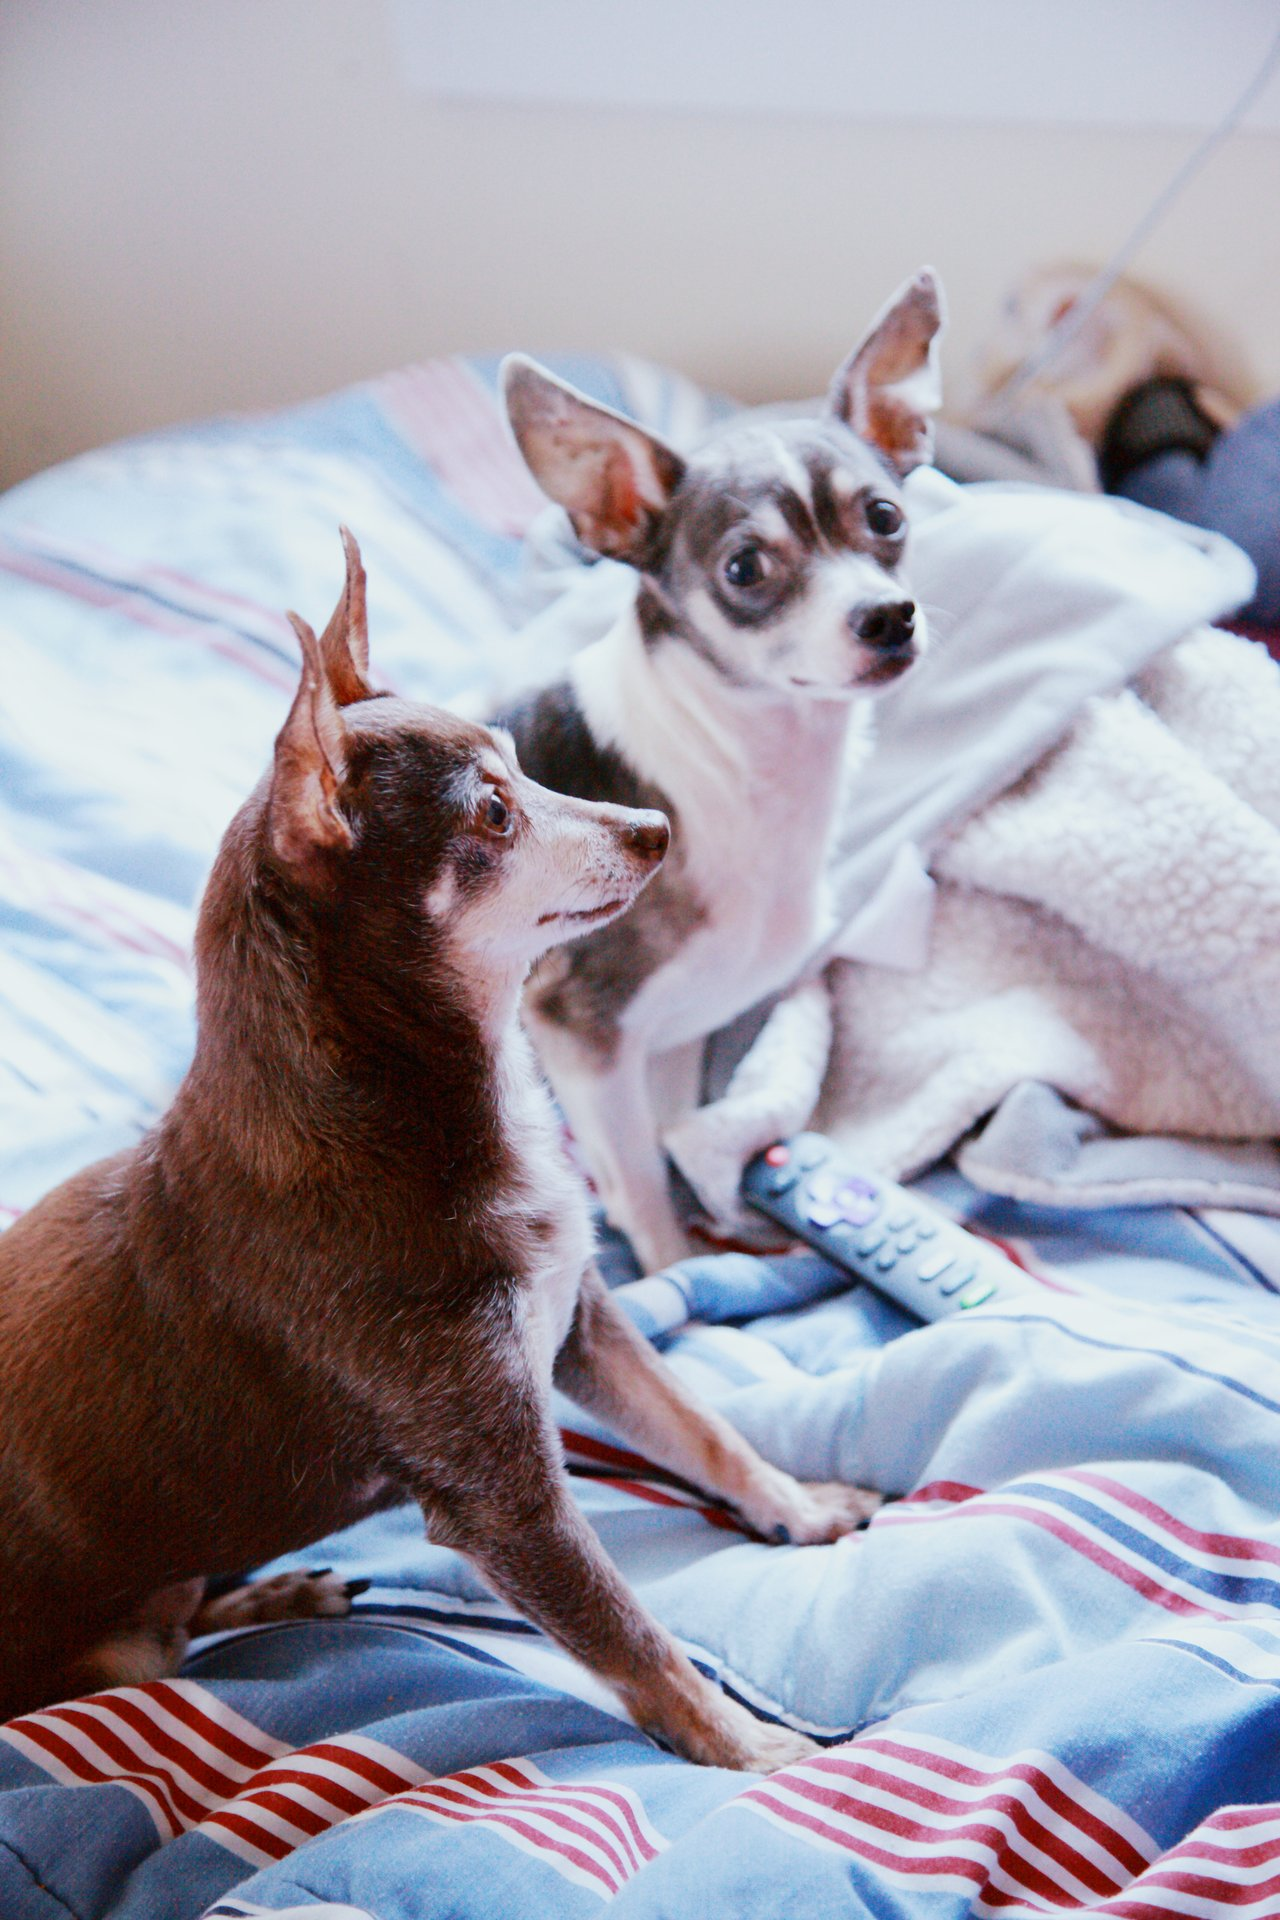 Chihuahua dogs on a bed